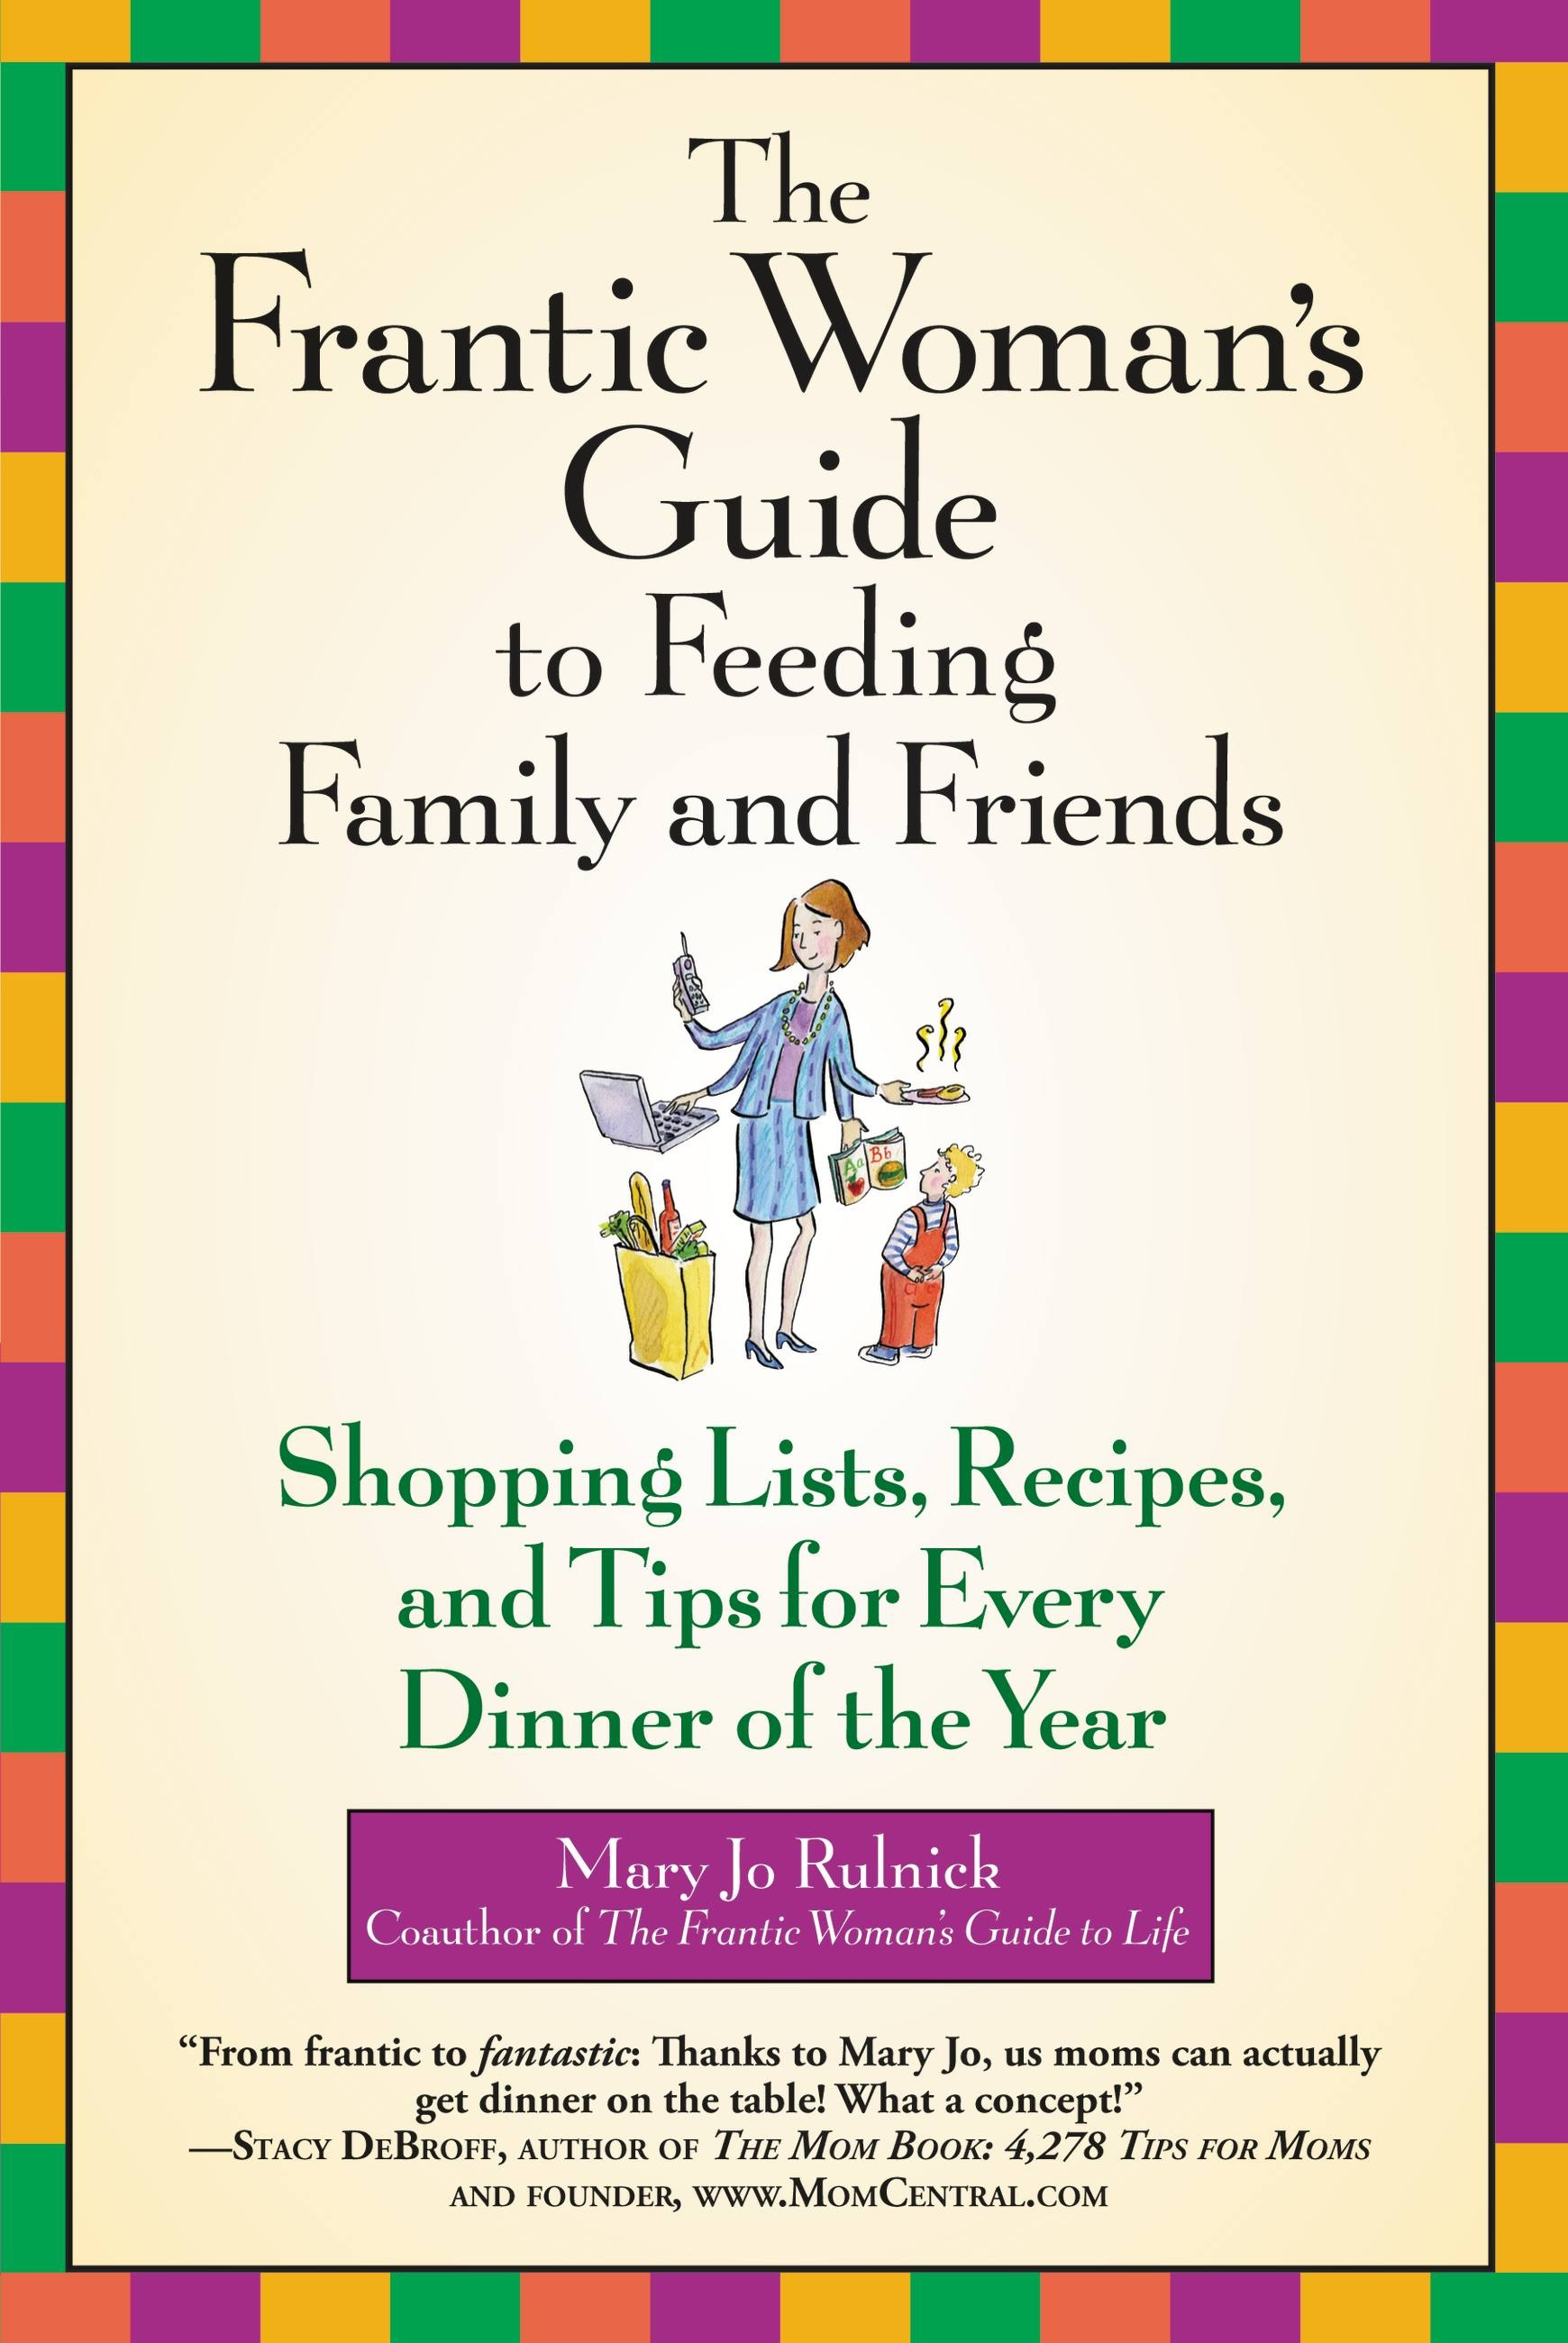 The Frantic Woman's Guide to Feeding Family and Friends